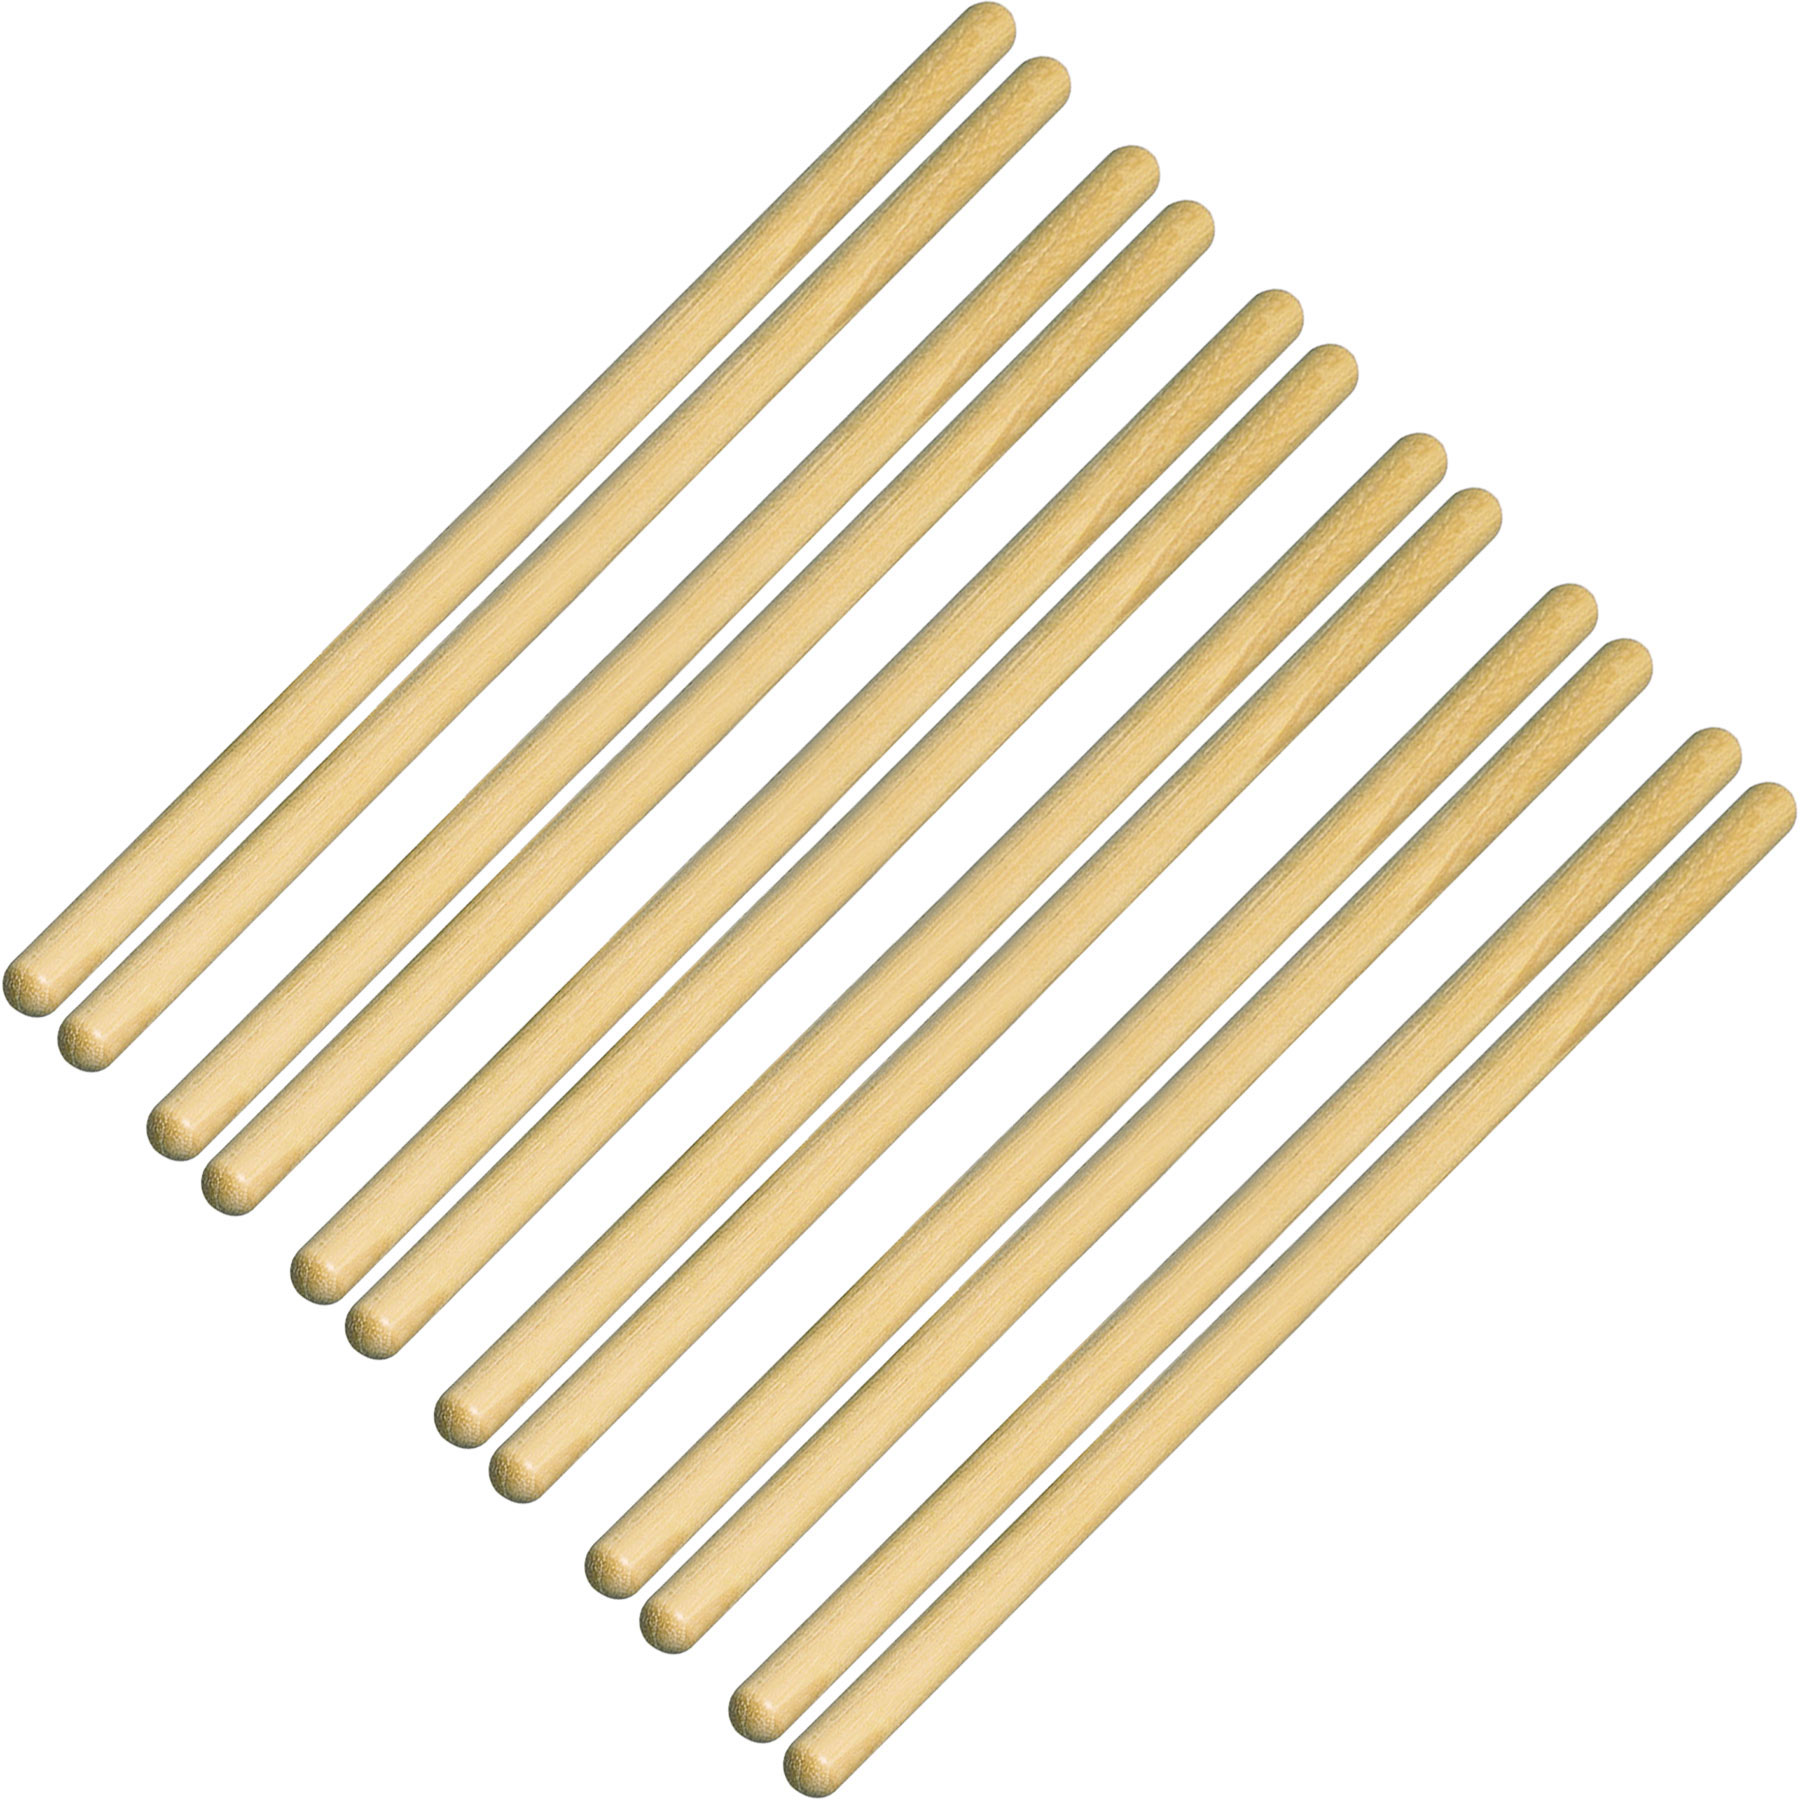 "LP 7/16"" Hickory Timbale Sticks (6 Pairs)"